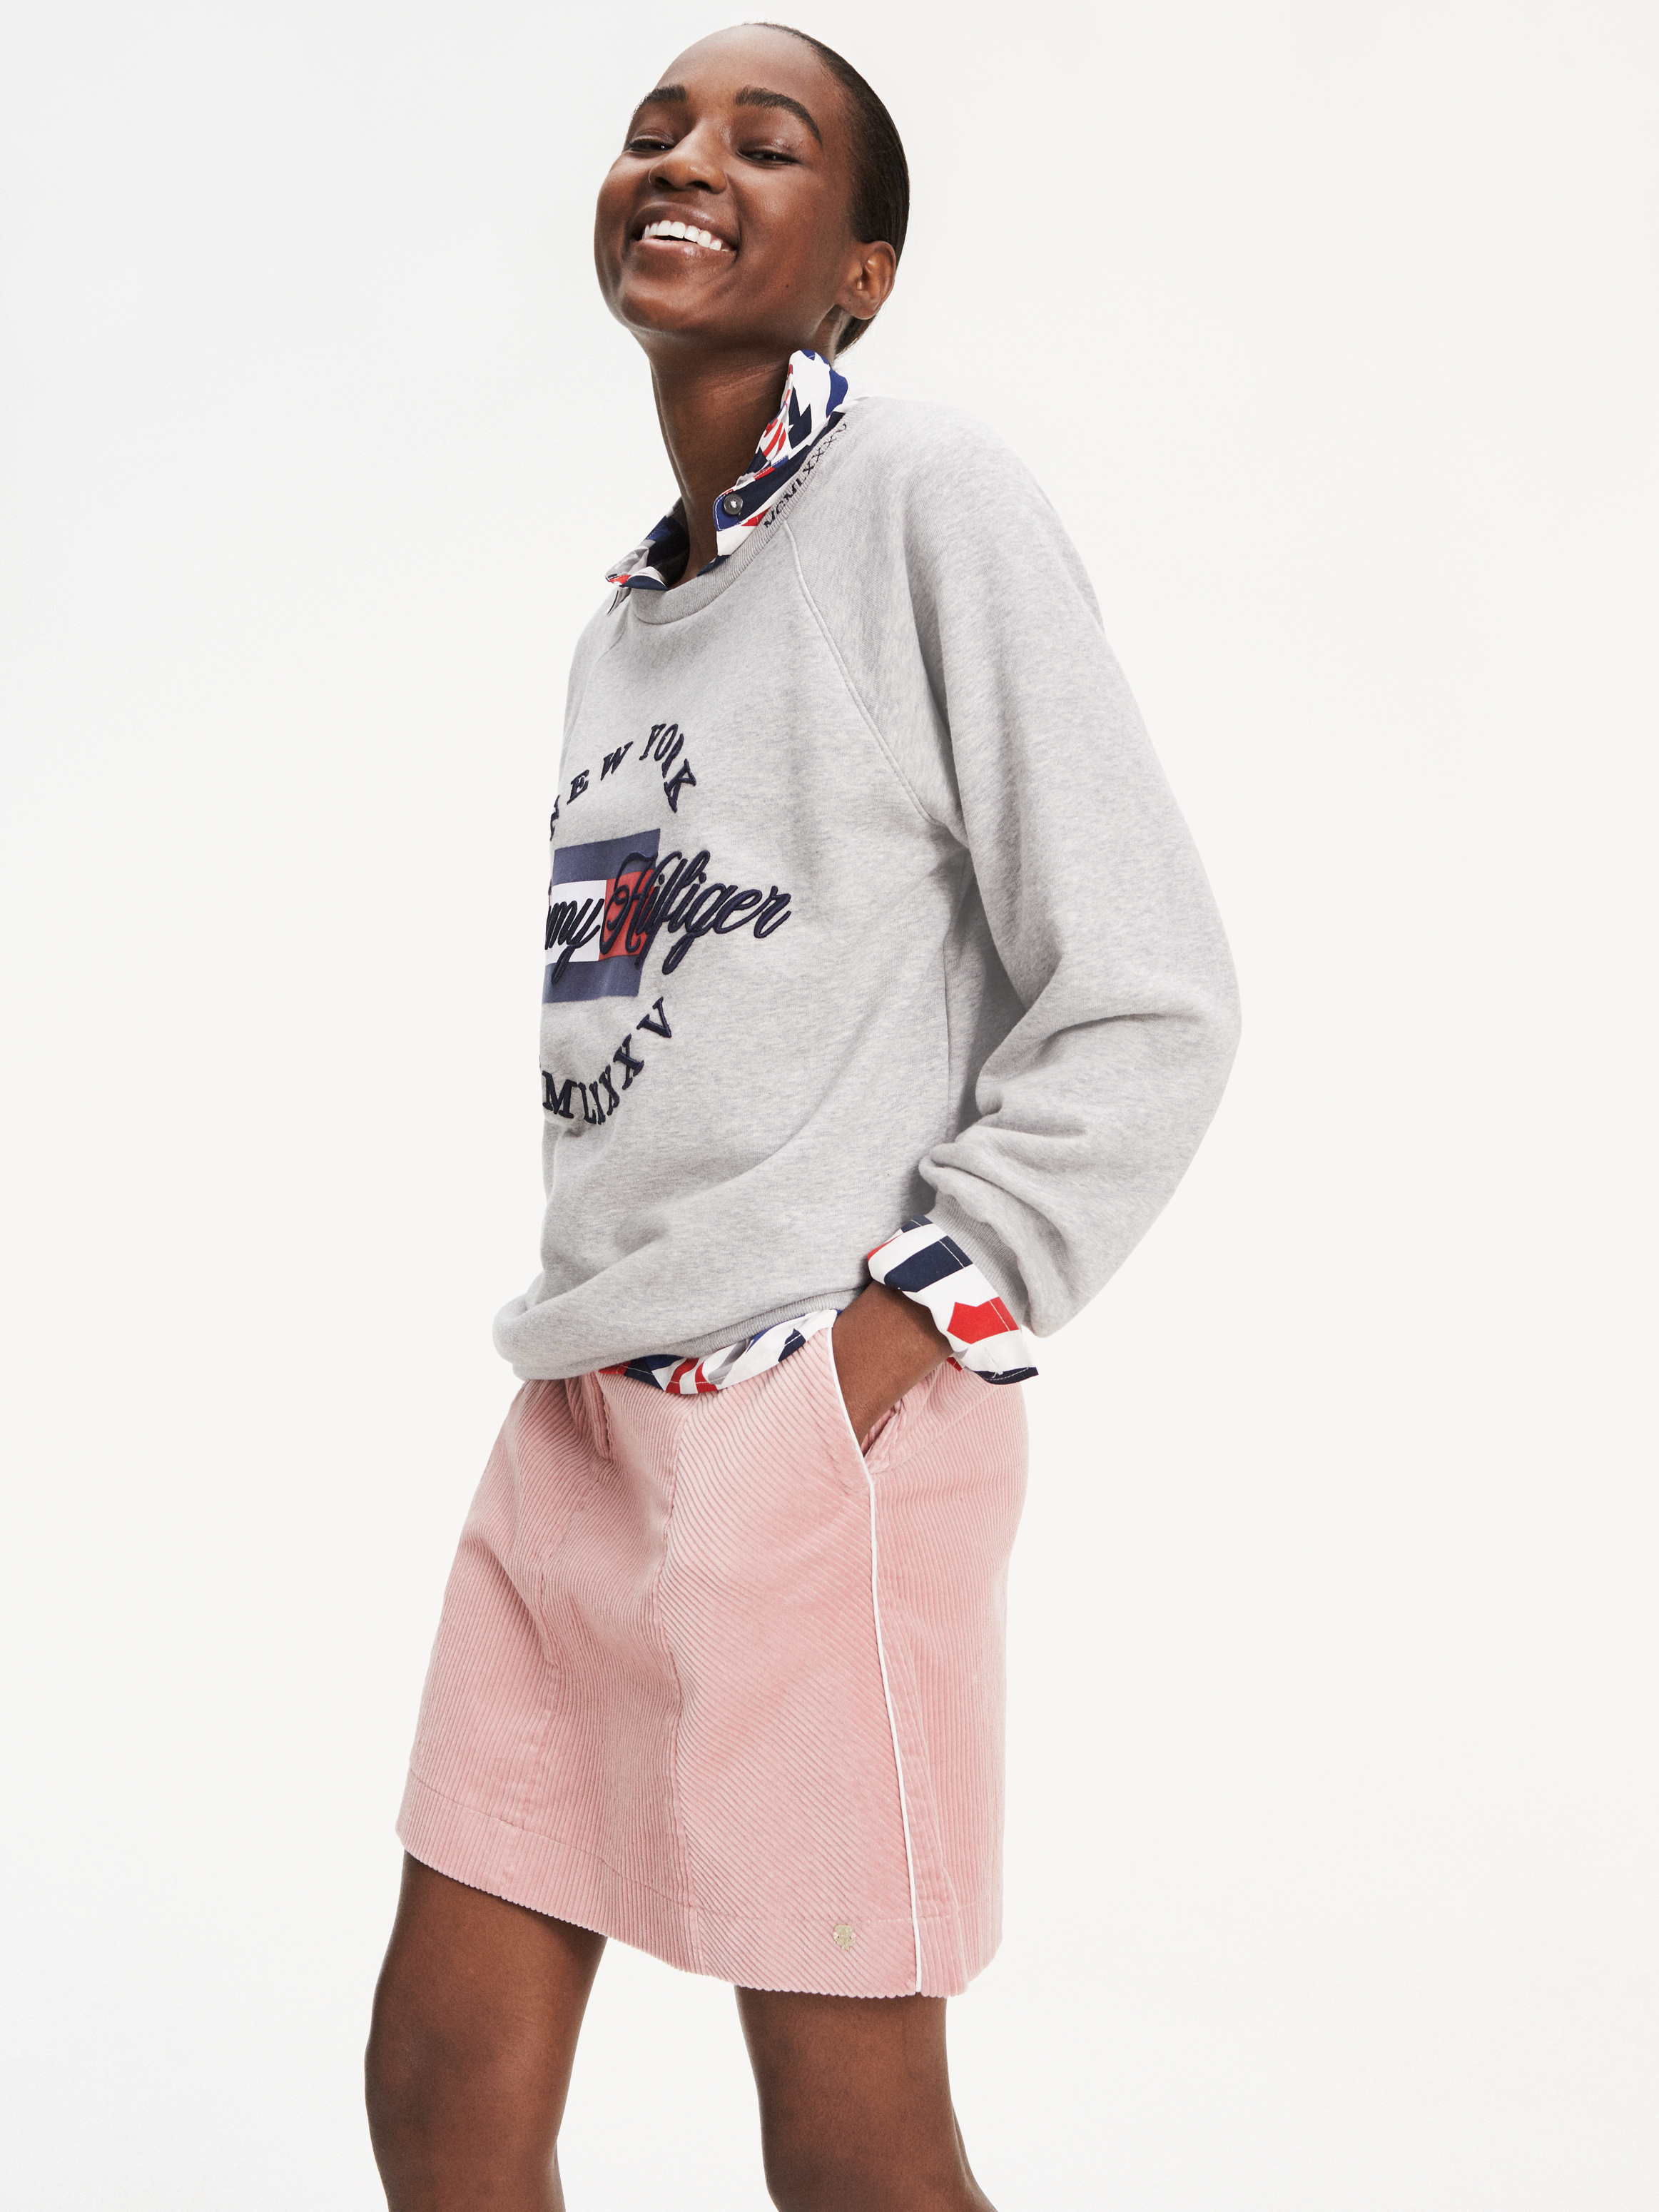 Hoodies sweatshirts Skirts for Women, compare prices and buy